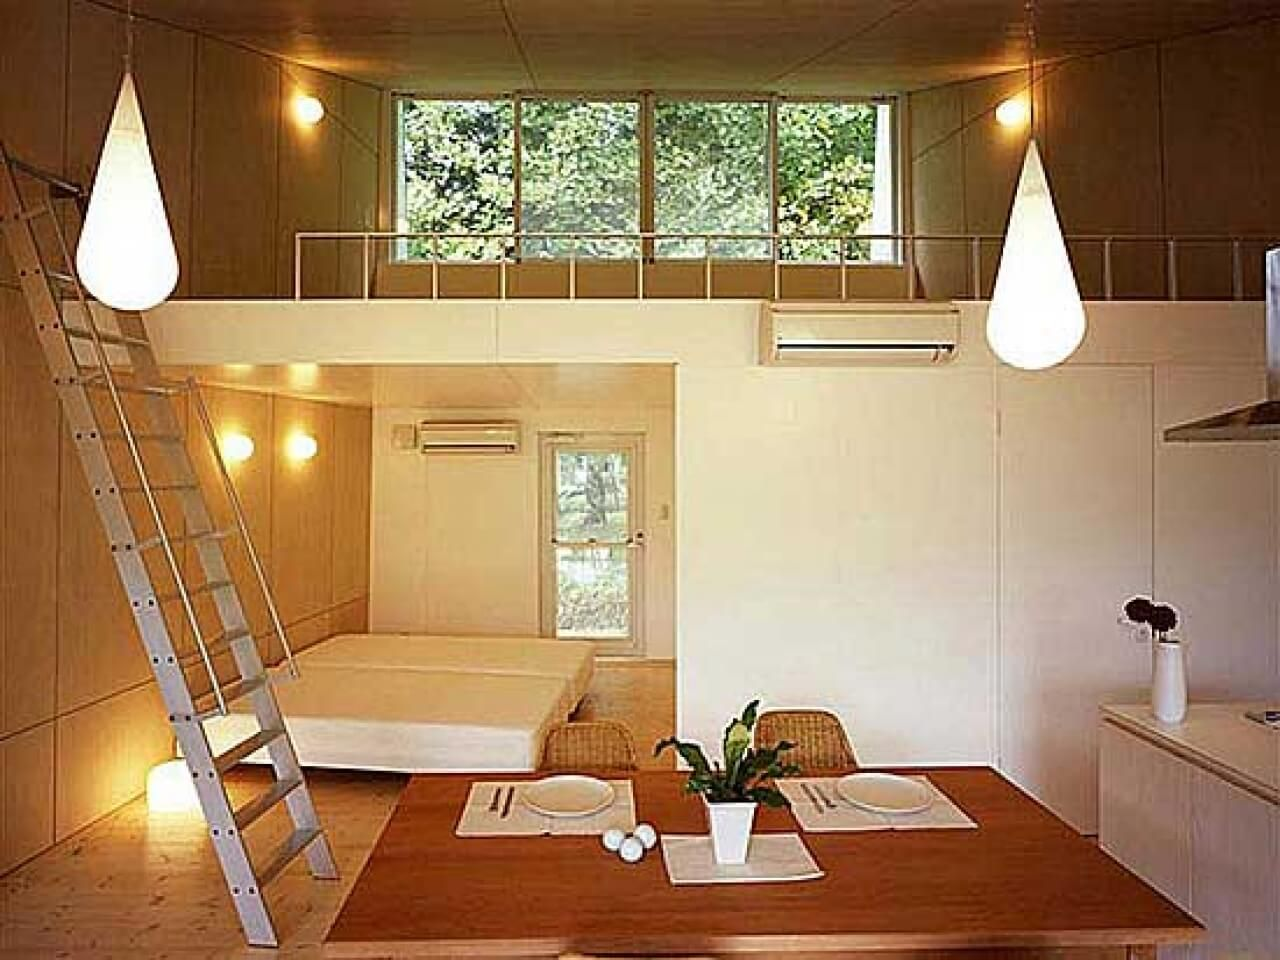 The Best Impressive Small House Design From Inside Small House Interior Design Small House Interior Tiny House Design